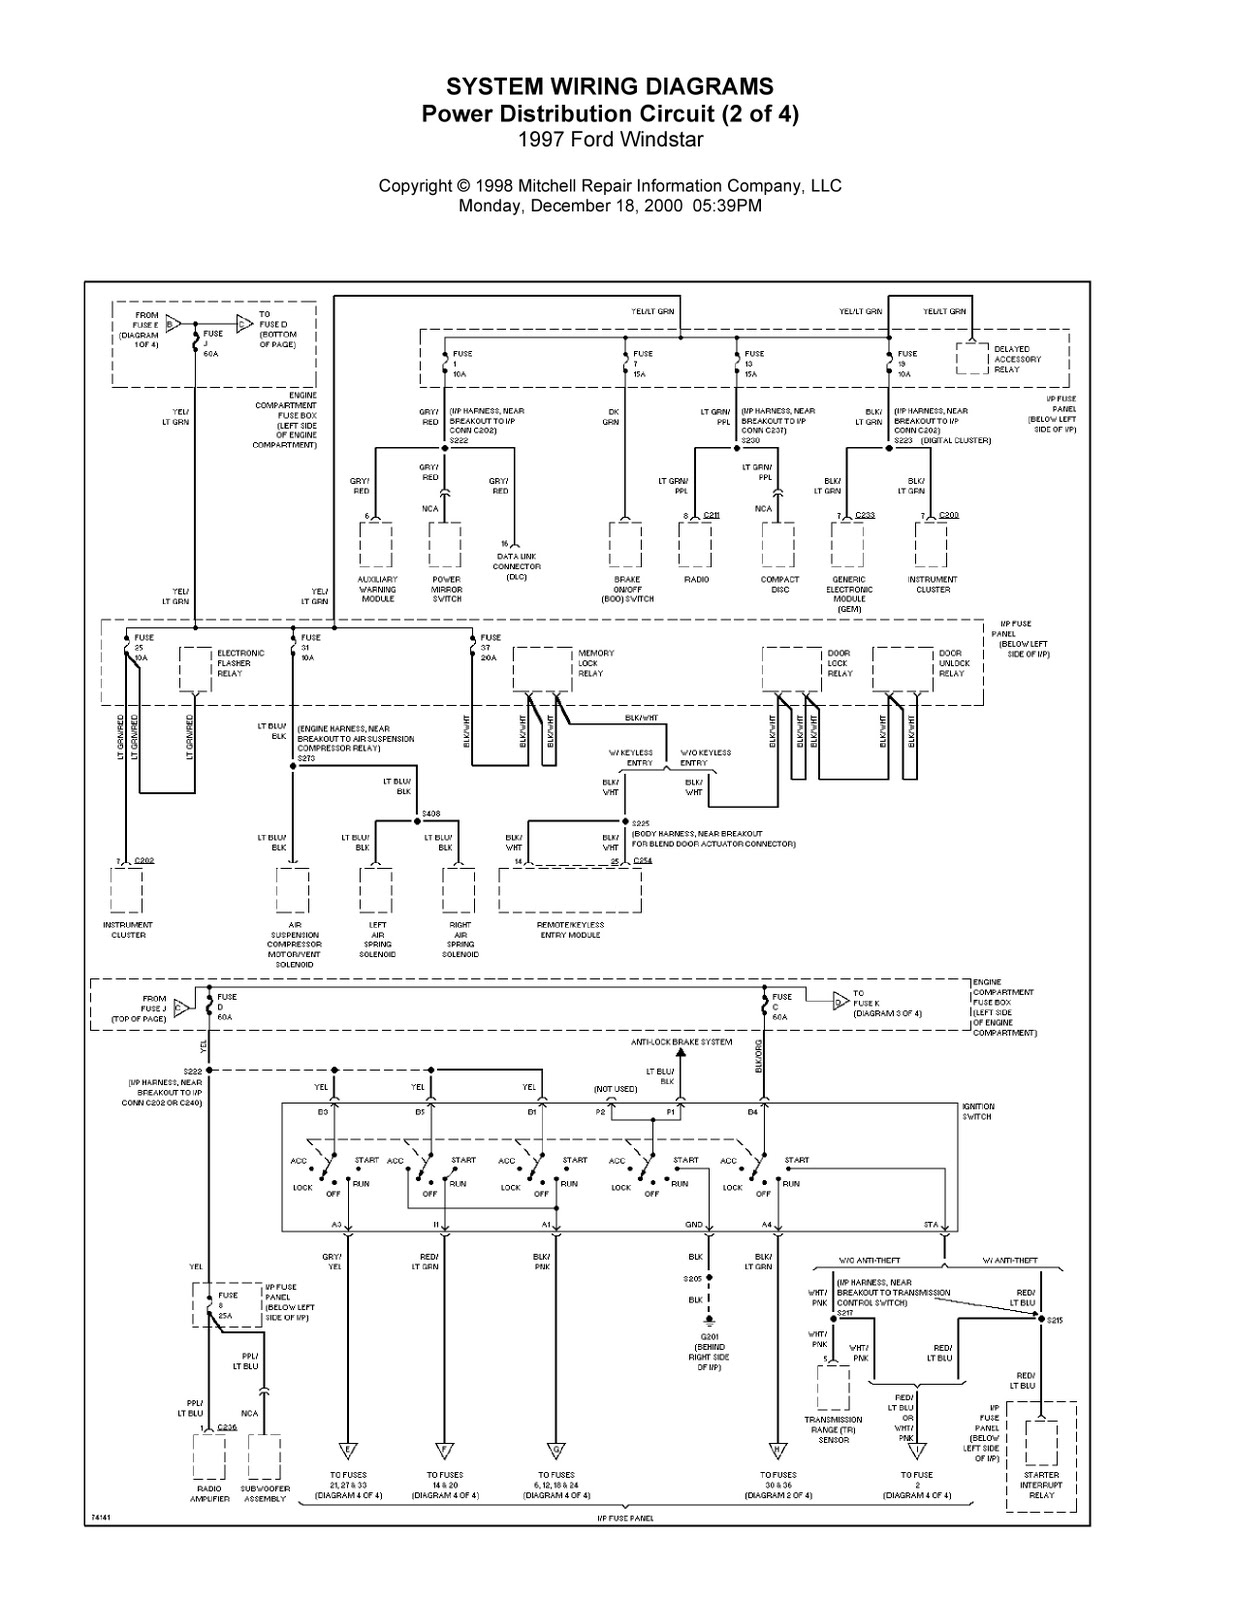 Ford Windstar Electrical Diagram Wiring Schematic 2019 For 2003 1997 Complete System Diagrams 2002